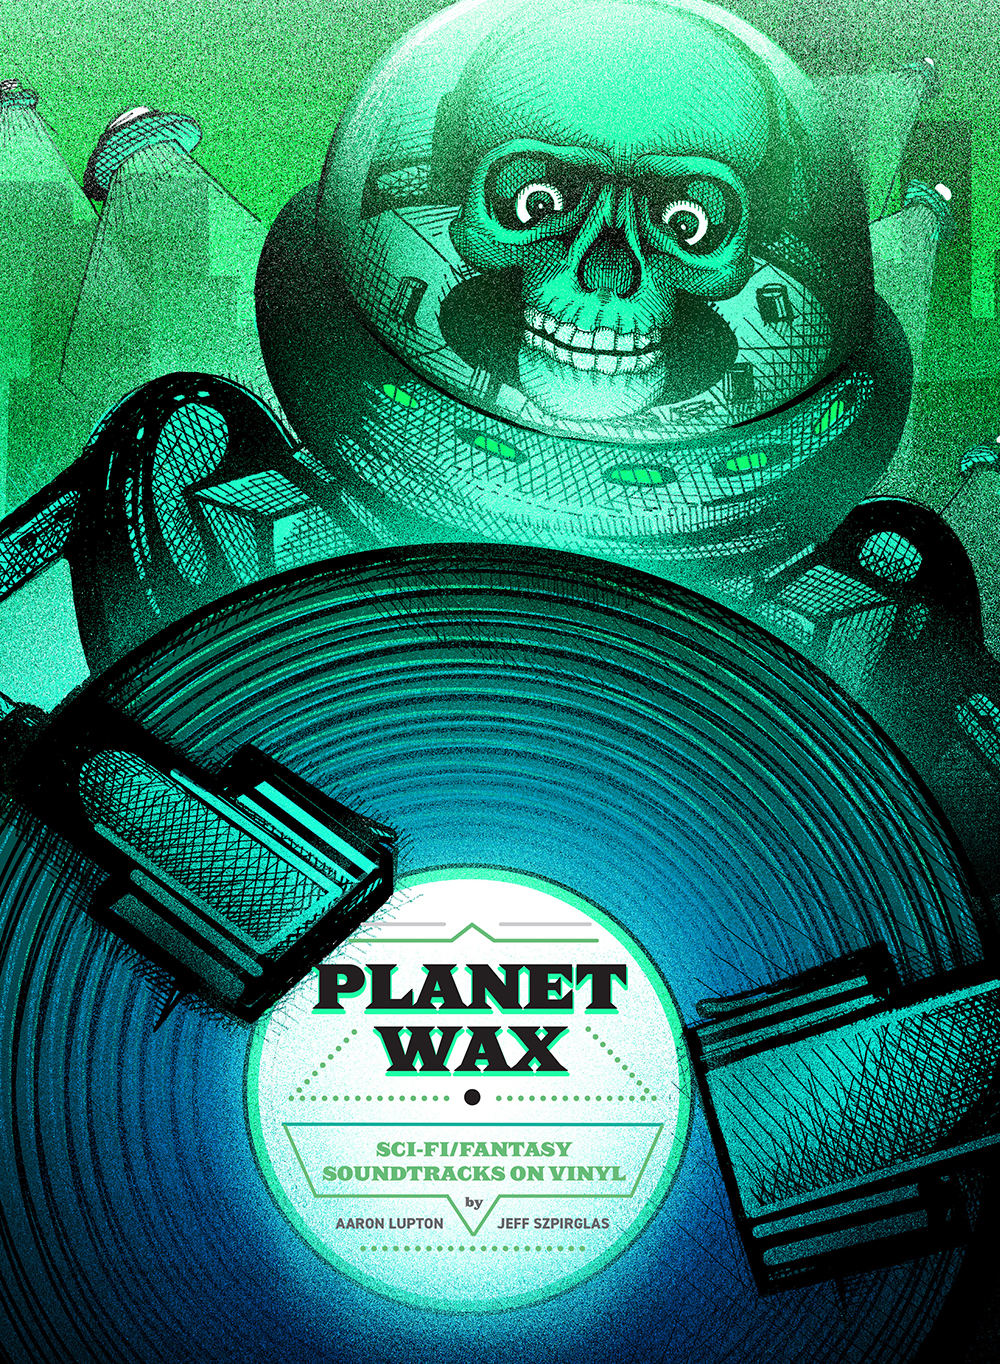 Aaron Lupton & Jeff Szpirglas - Planet Wax: Sci-Fi/Fantasy Soundtracks On Vinyl [RSD Drops Aug 2020]